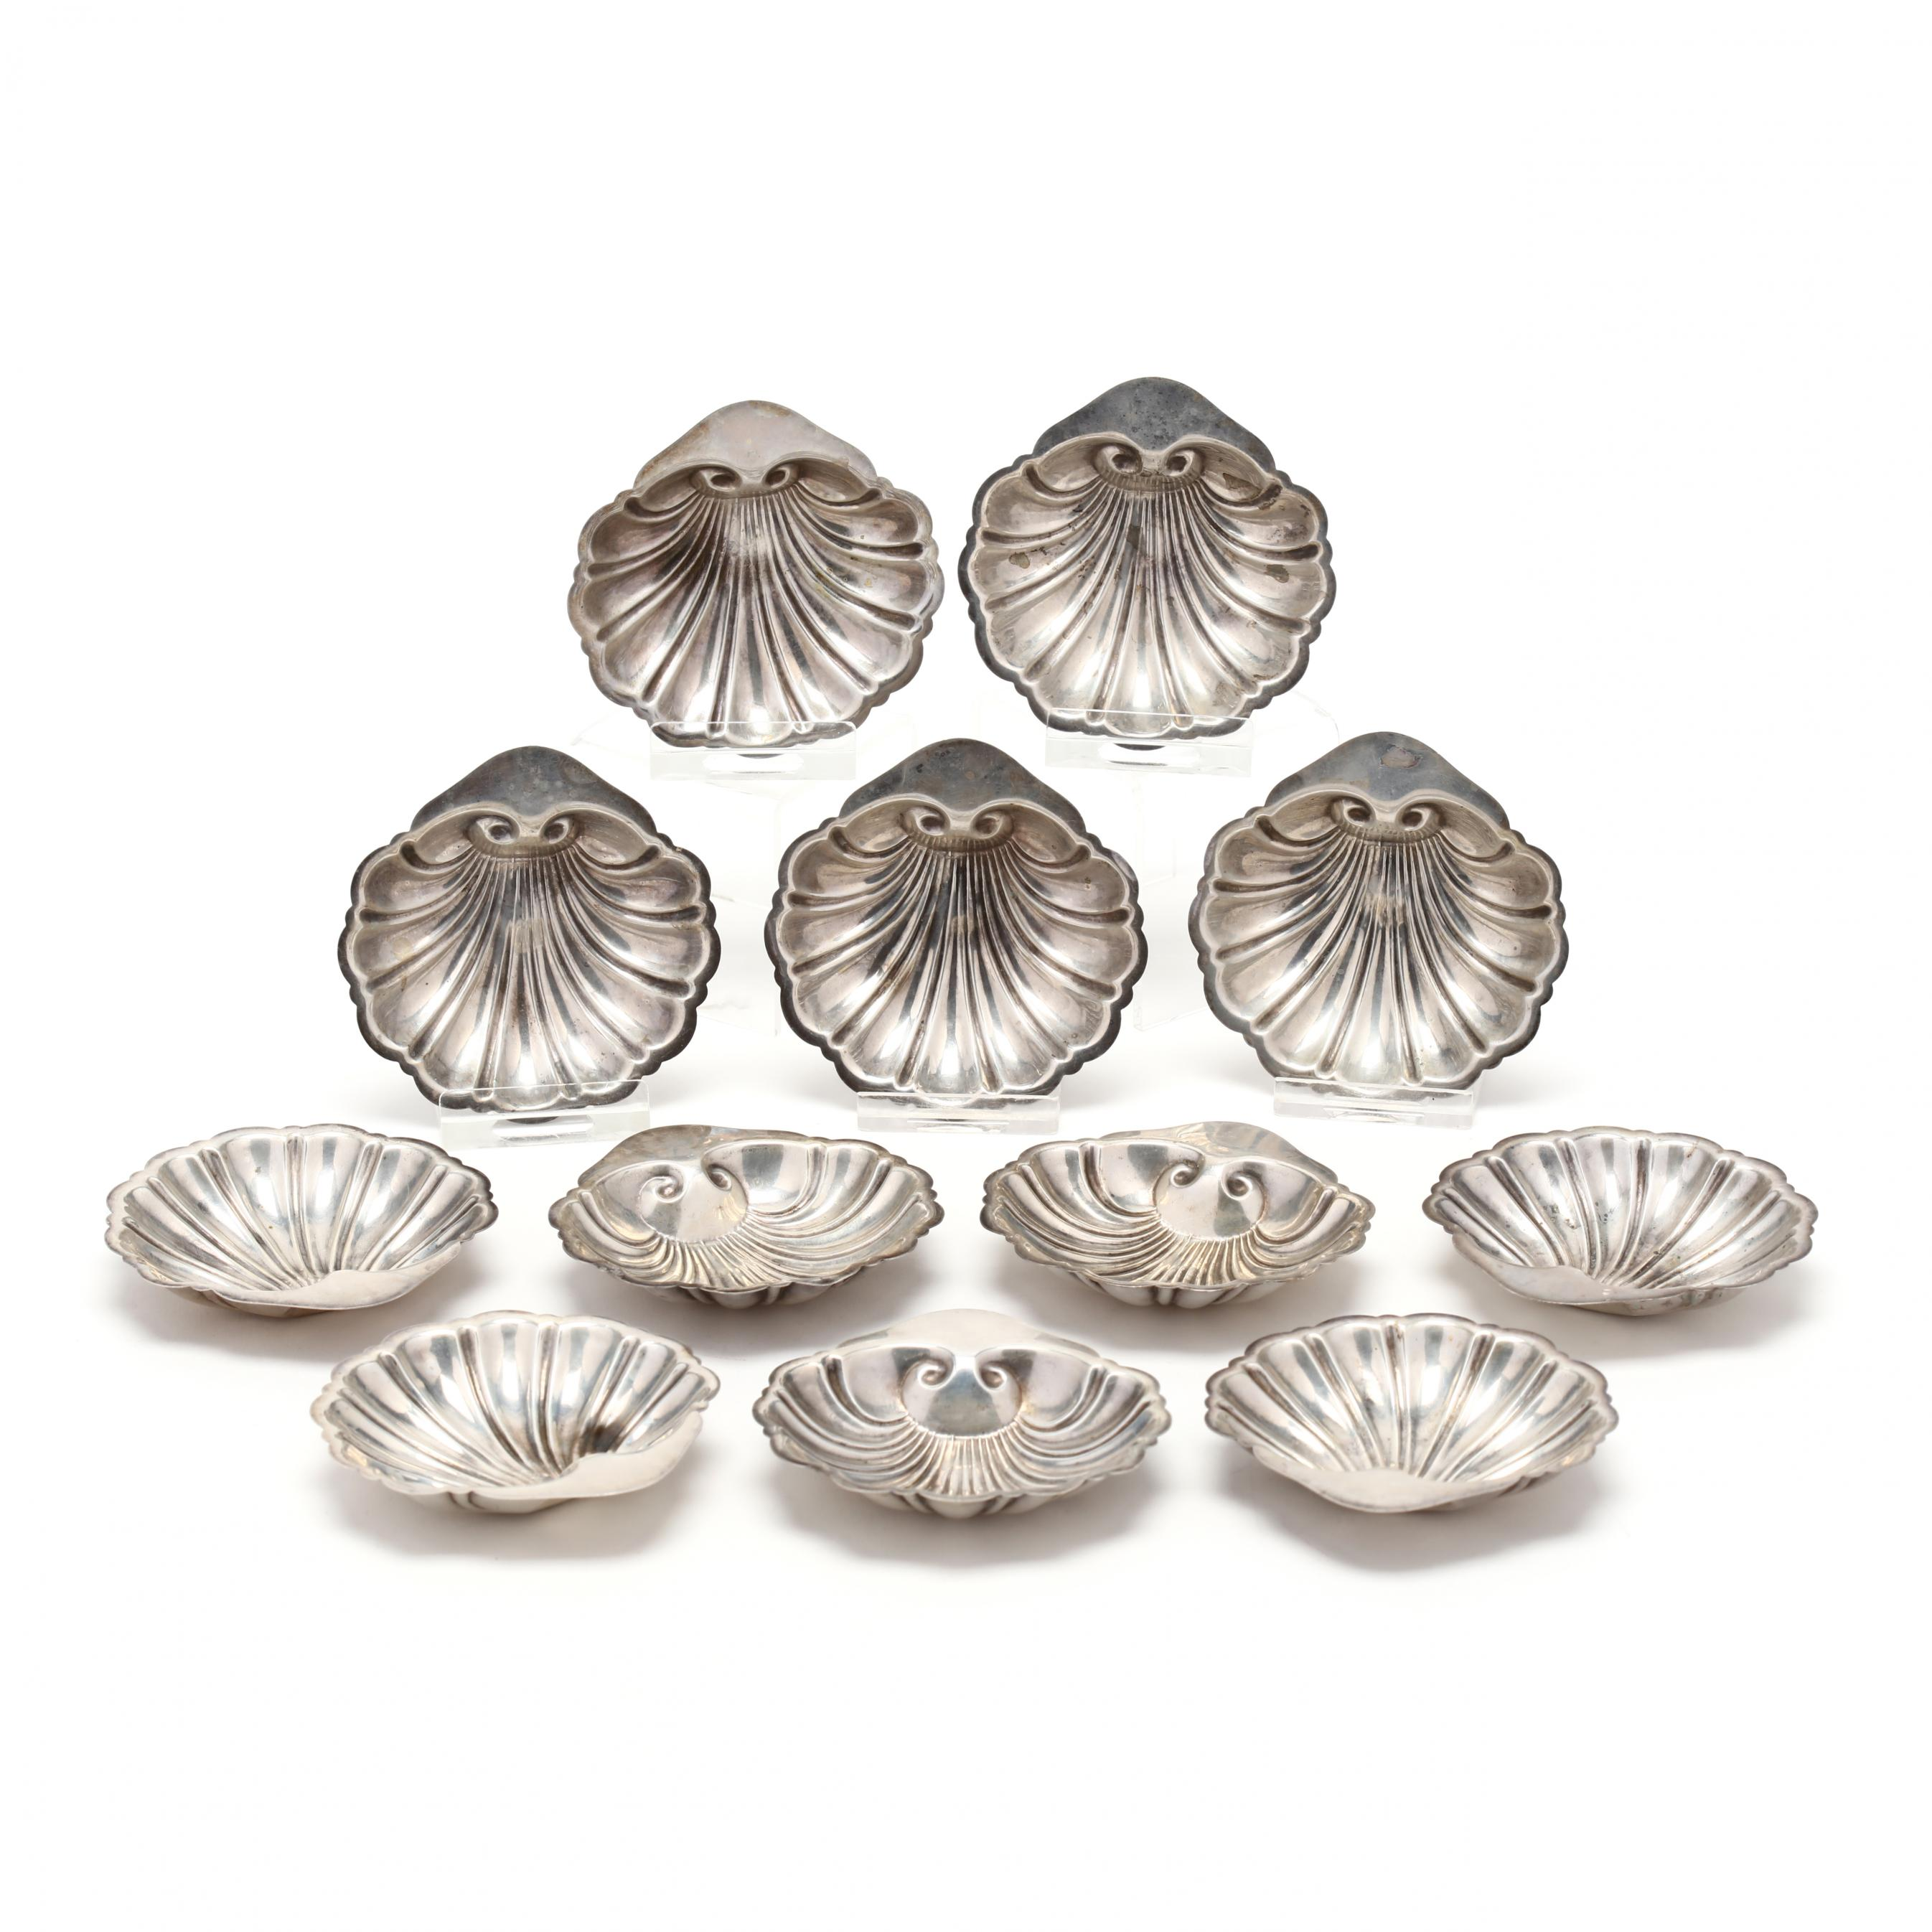 a-set-of-twelve-sterling-silver-shell-form-butter-pats